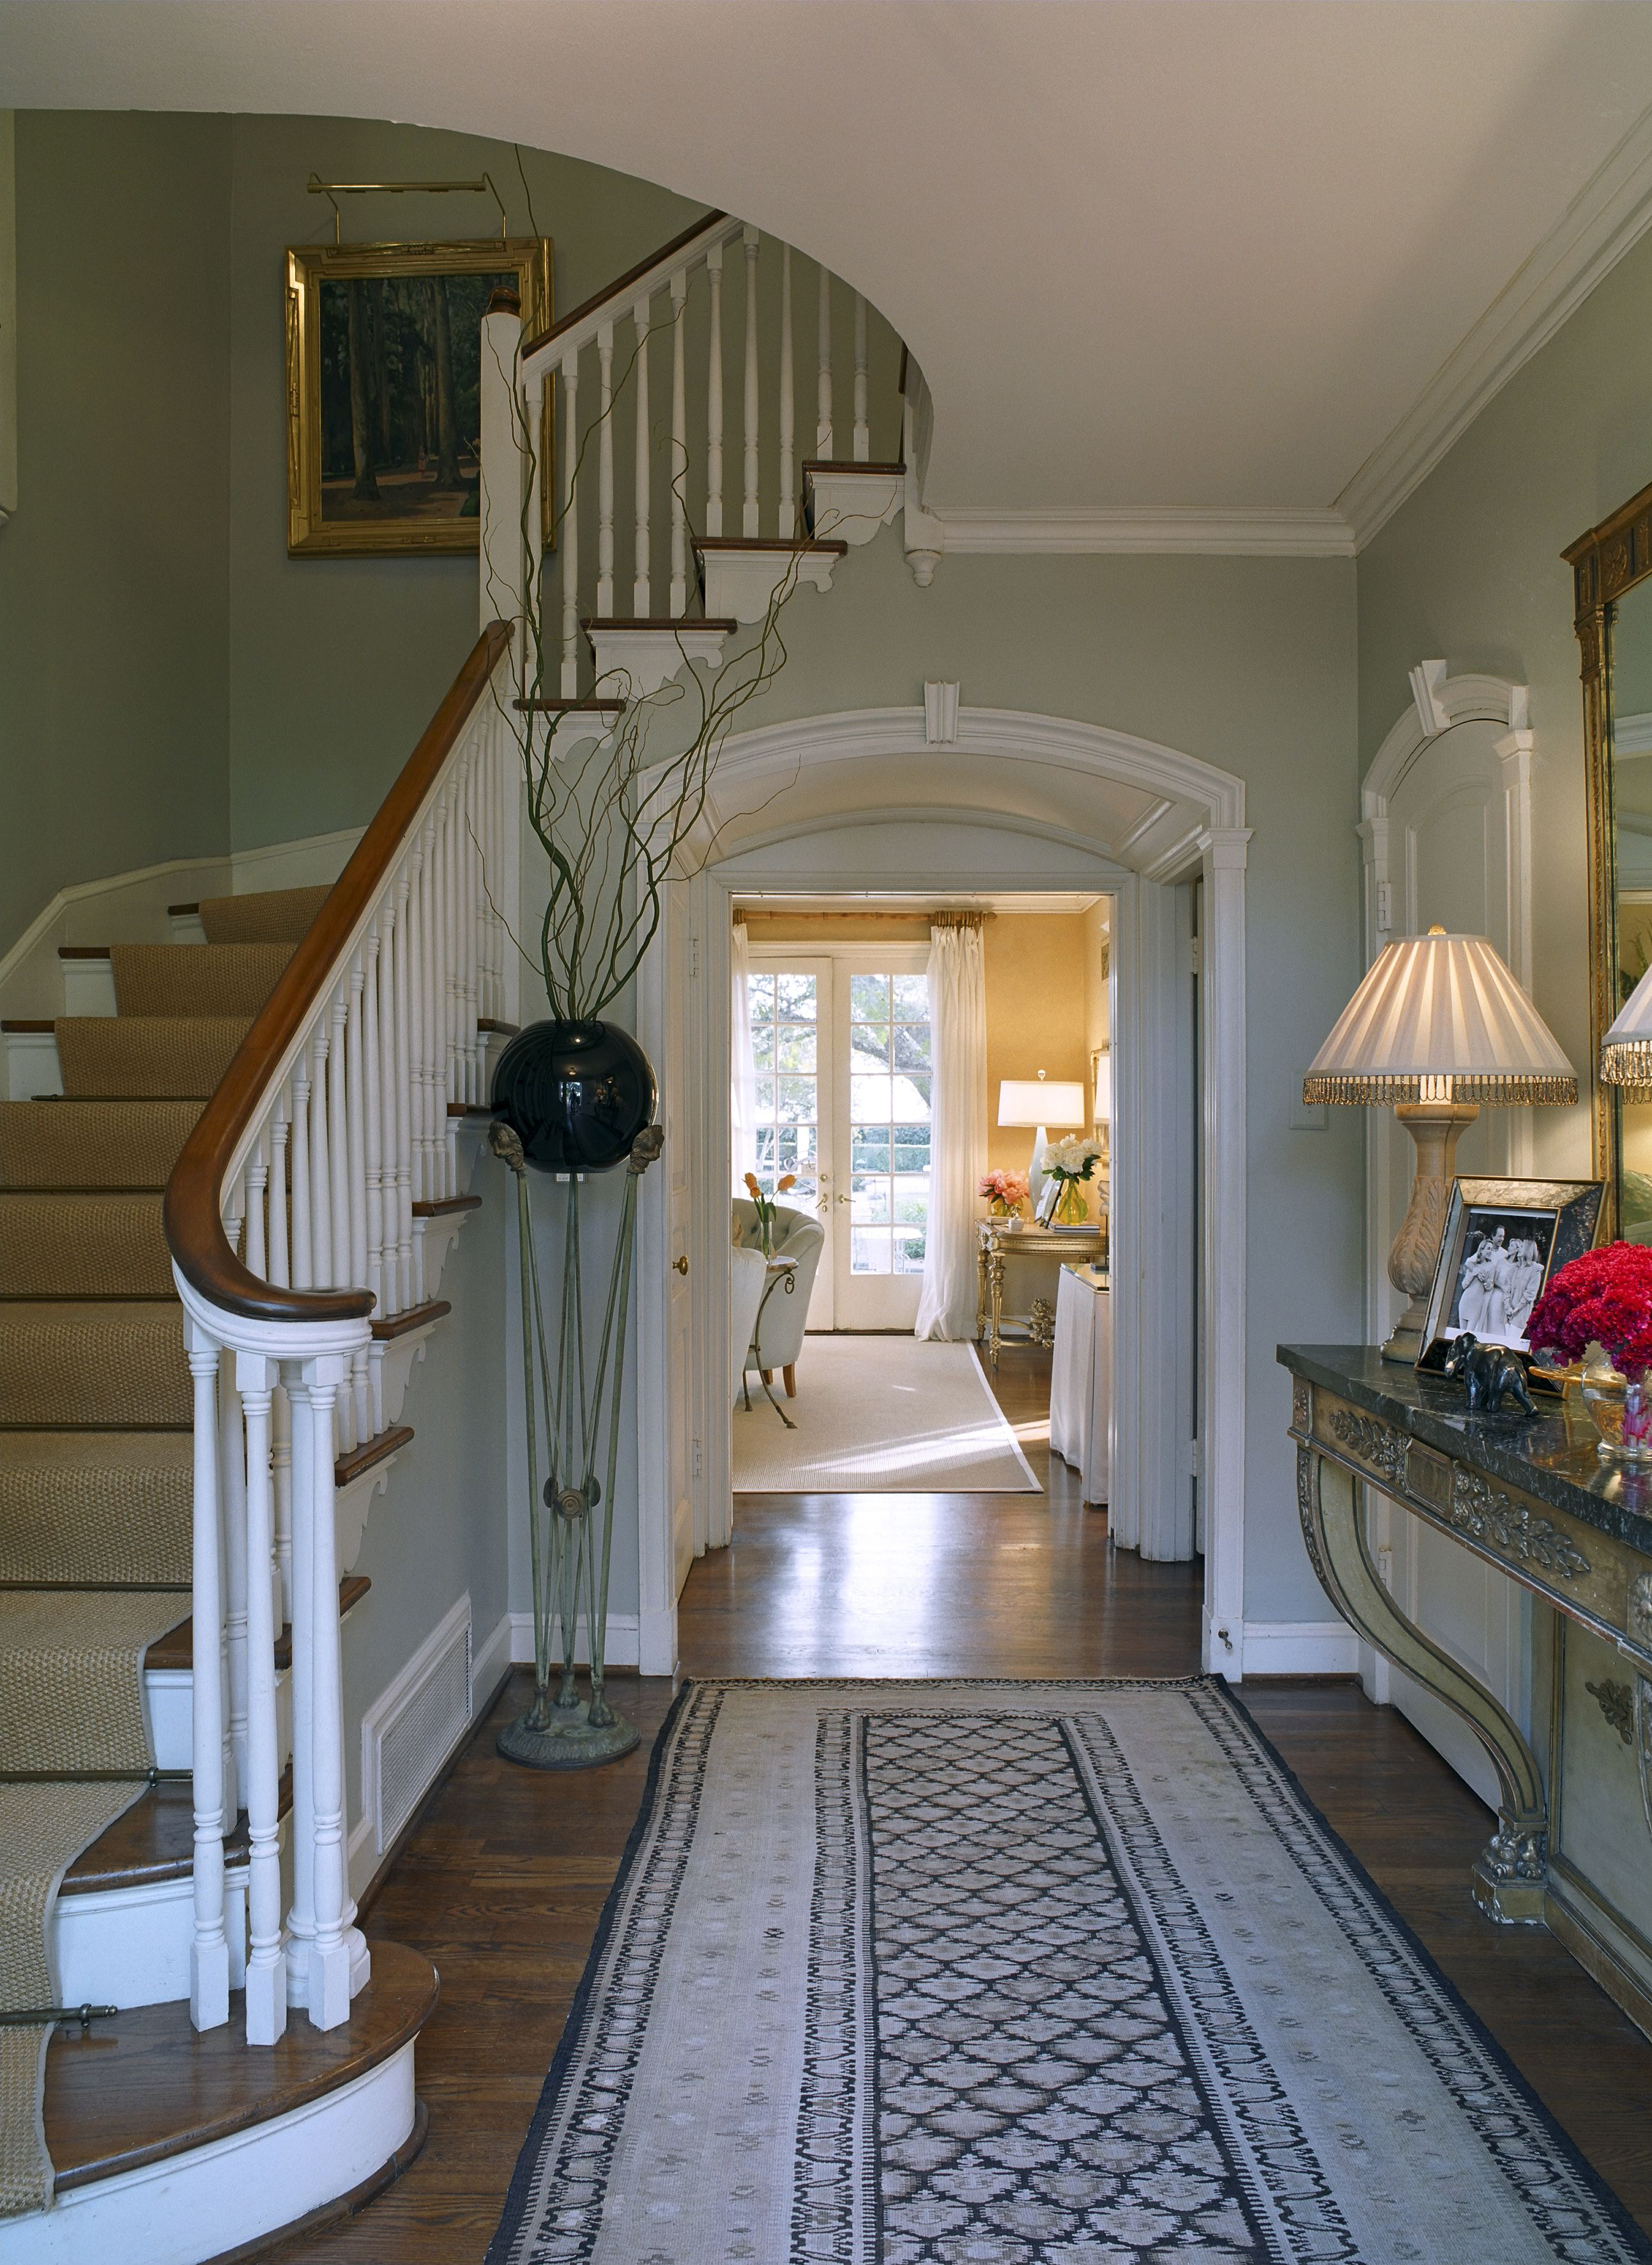 Home interior stairs jan showers  interior design  entry halls  homes  interior